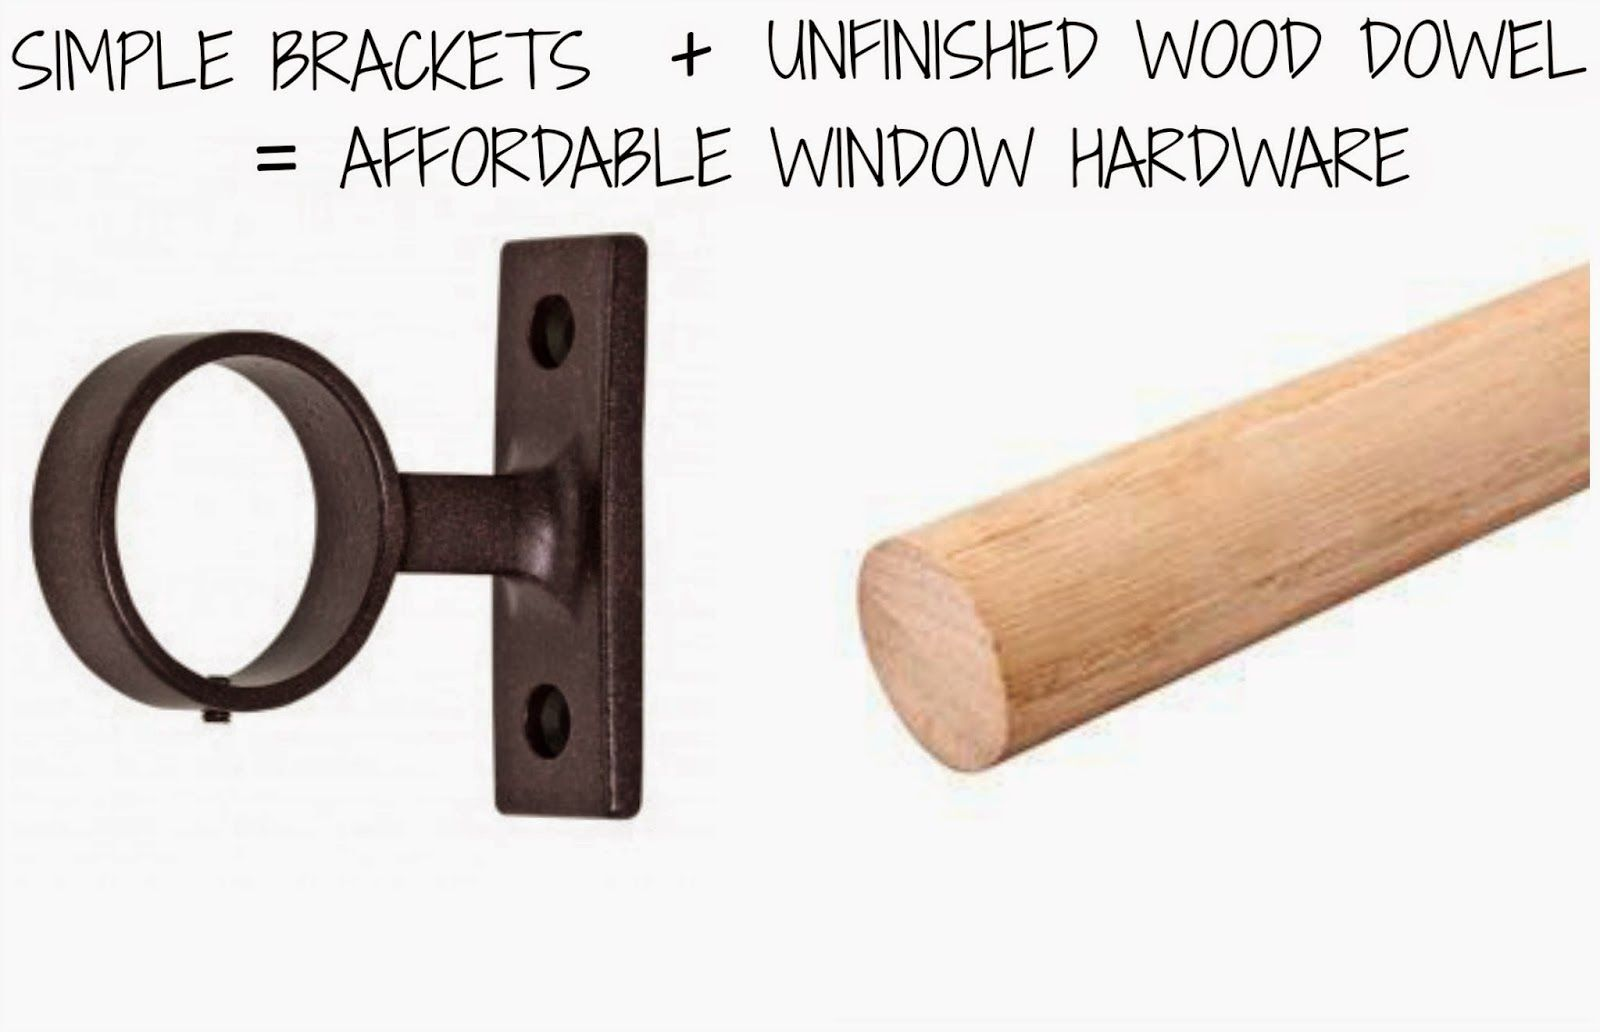 White wood curtain rods and brackets - Best 25 Wooden Curtain Rods Ideas On Pinterest Wood Curtain Rods Diy Interior Restoration And Diy Curtain Rods